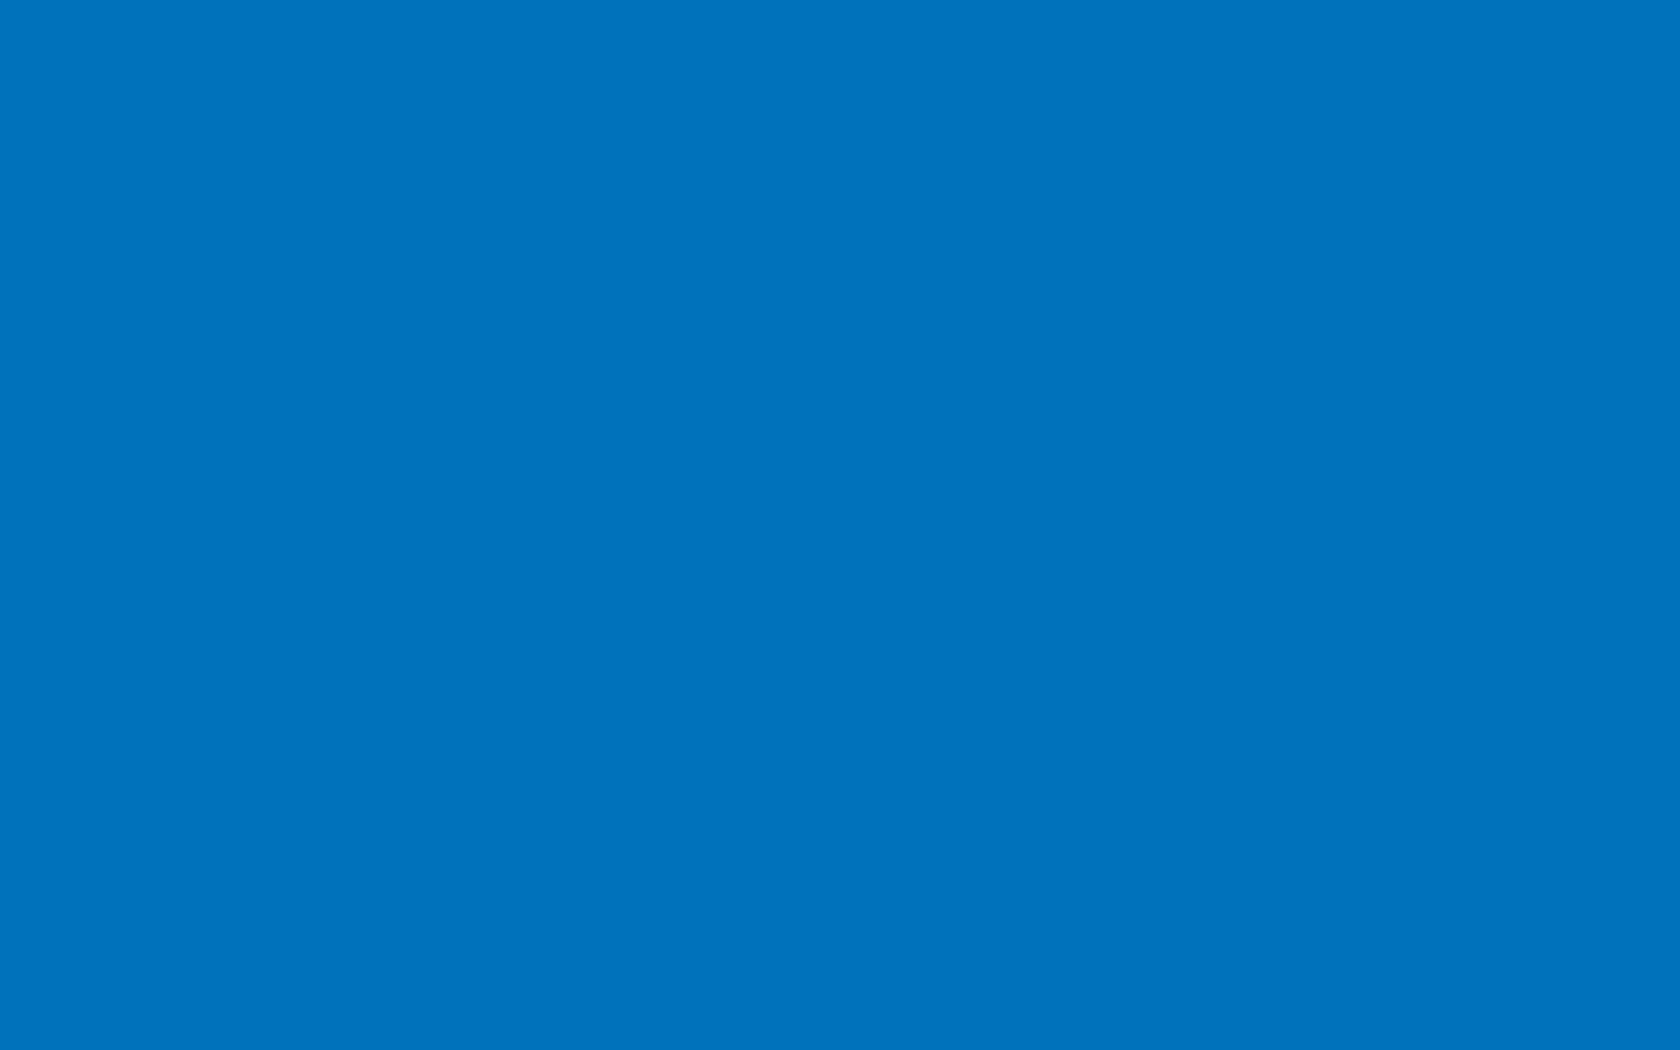 1680x1050 French Blue Solid Color Background